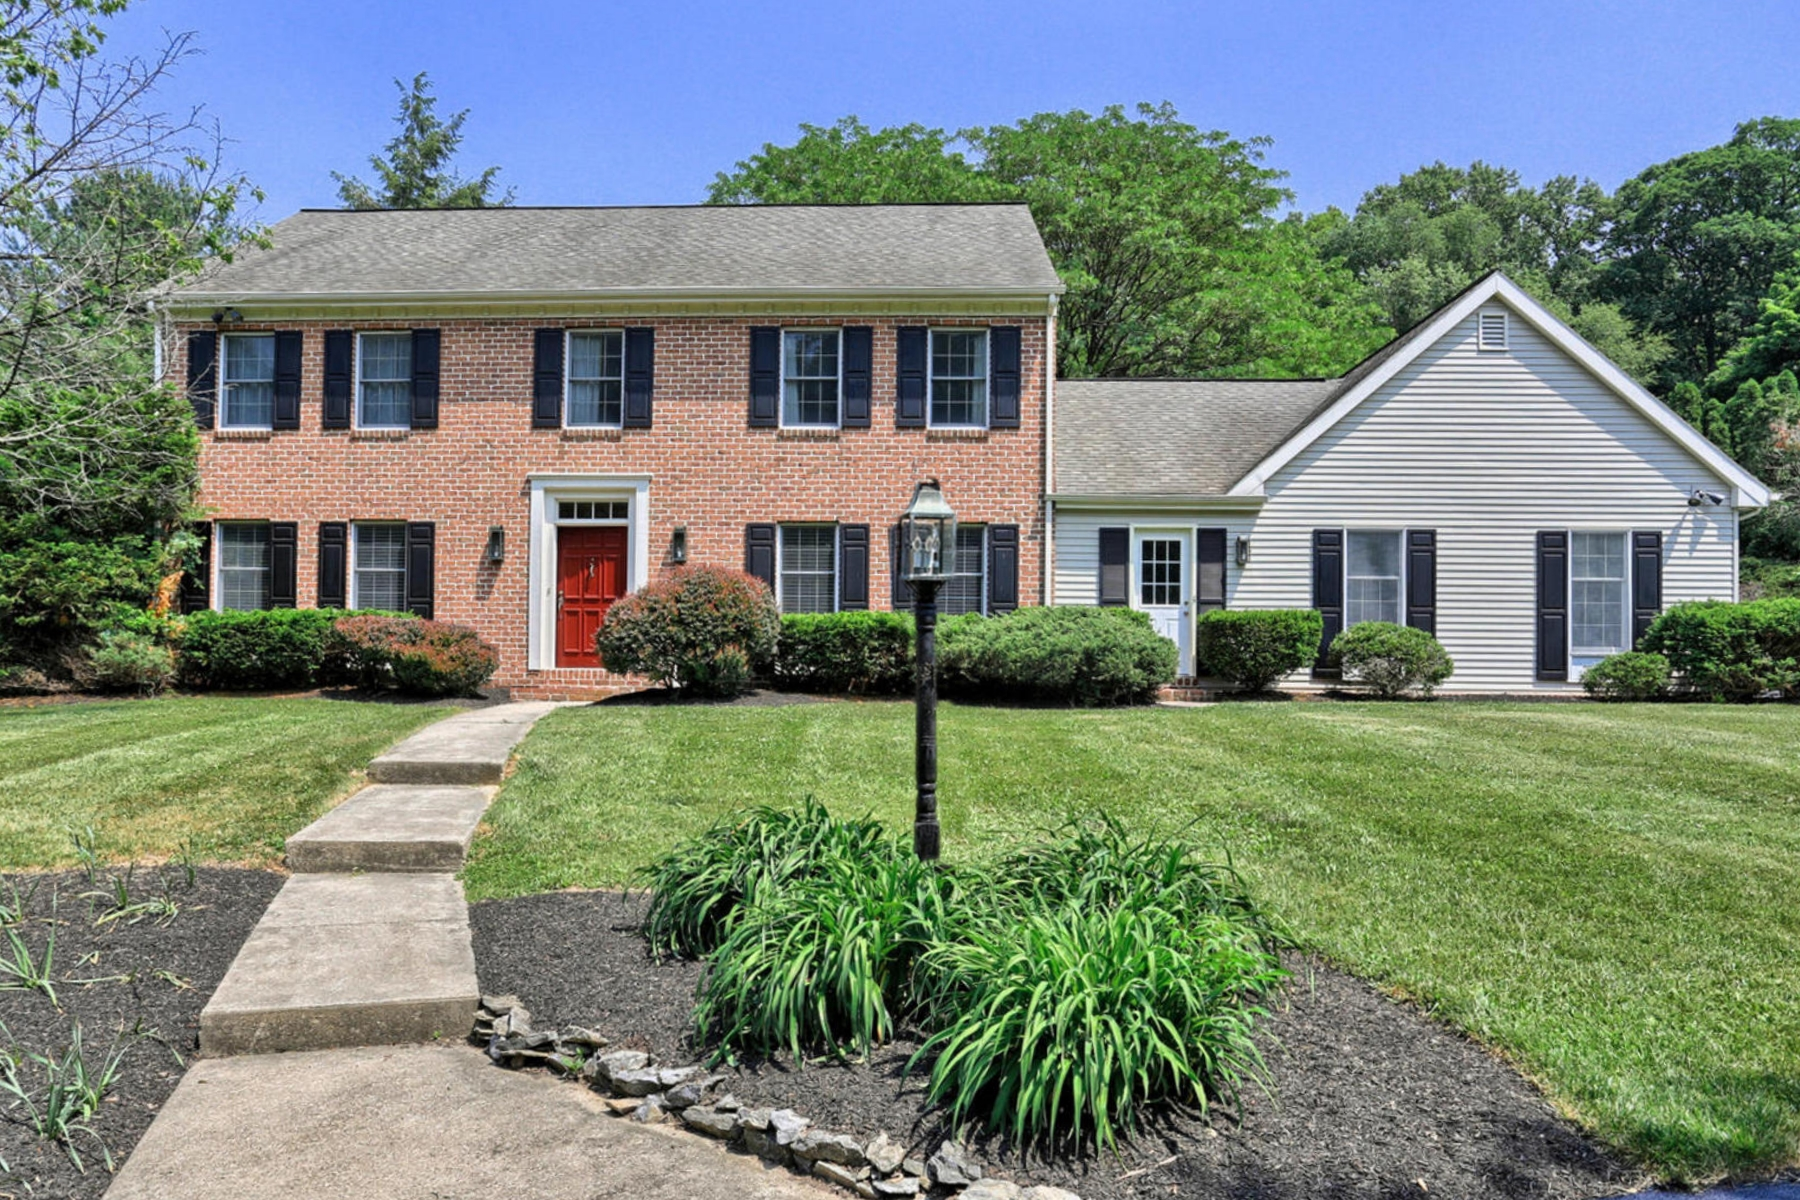 Single Family Home for Sale at 2355 Fruitville Pike Lancaster, 17601 United States